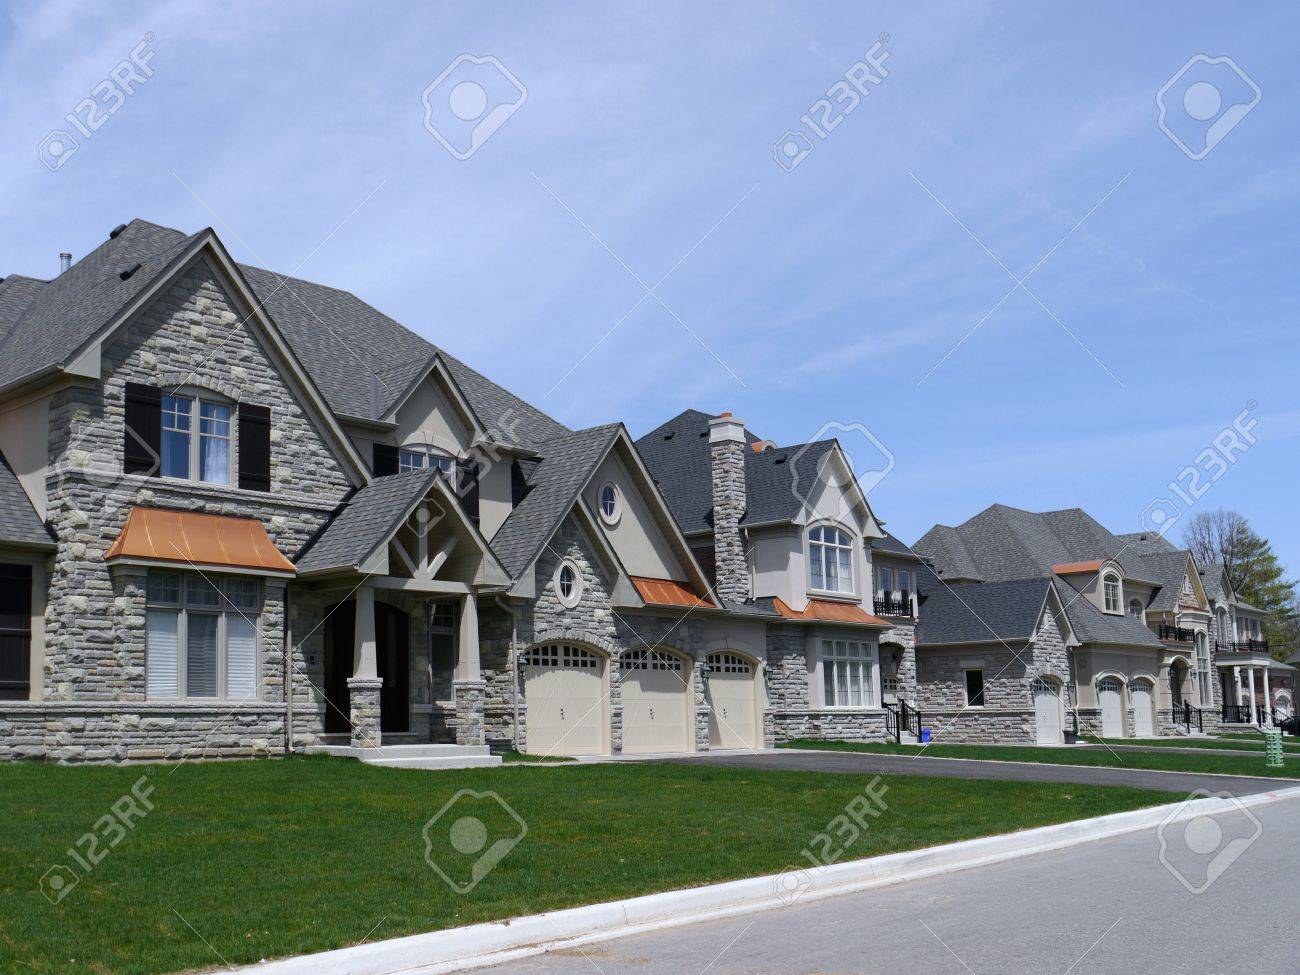 Chicago usa may 2011 suburban street with modern houses stock photo 9889452